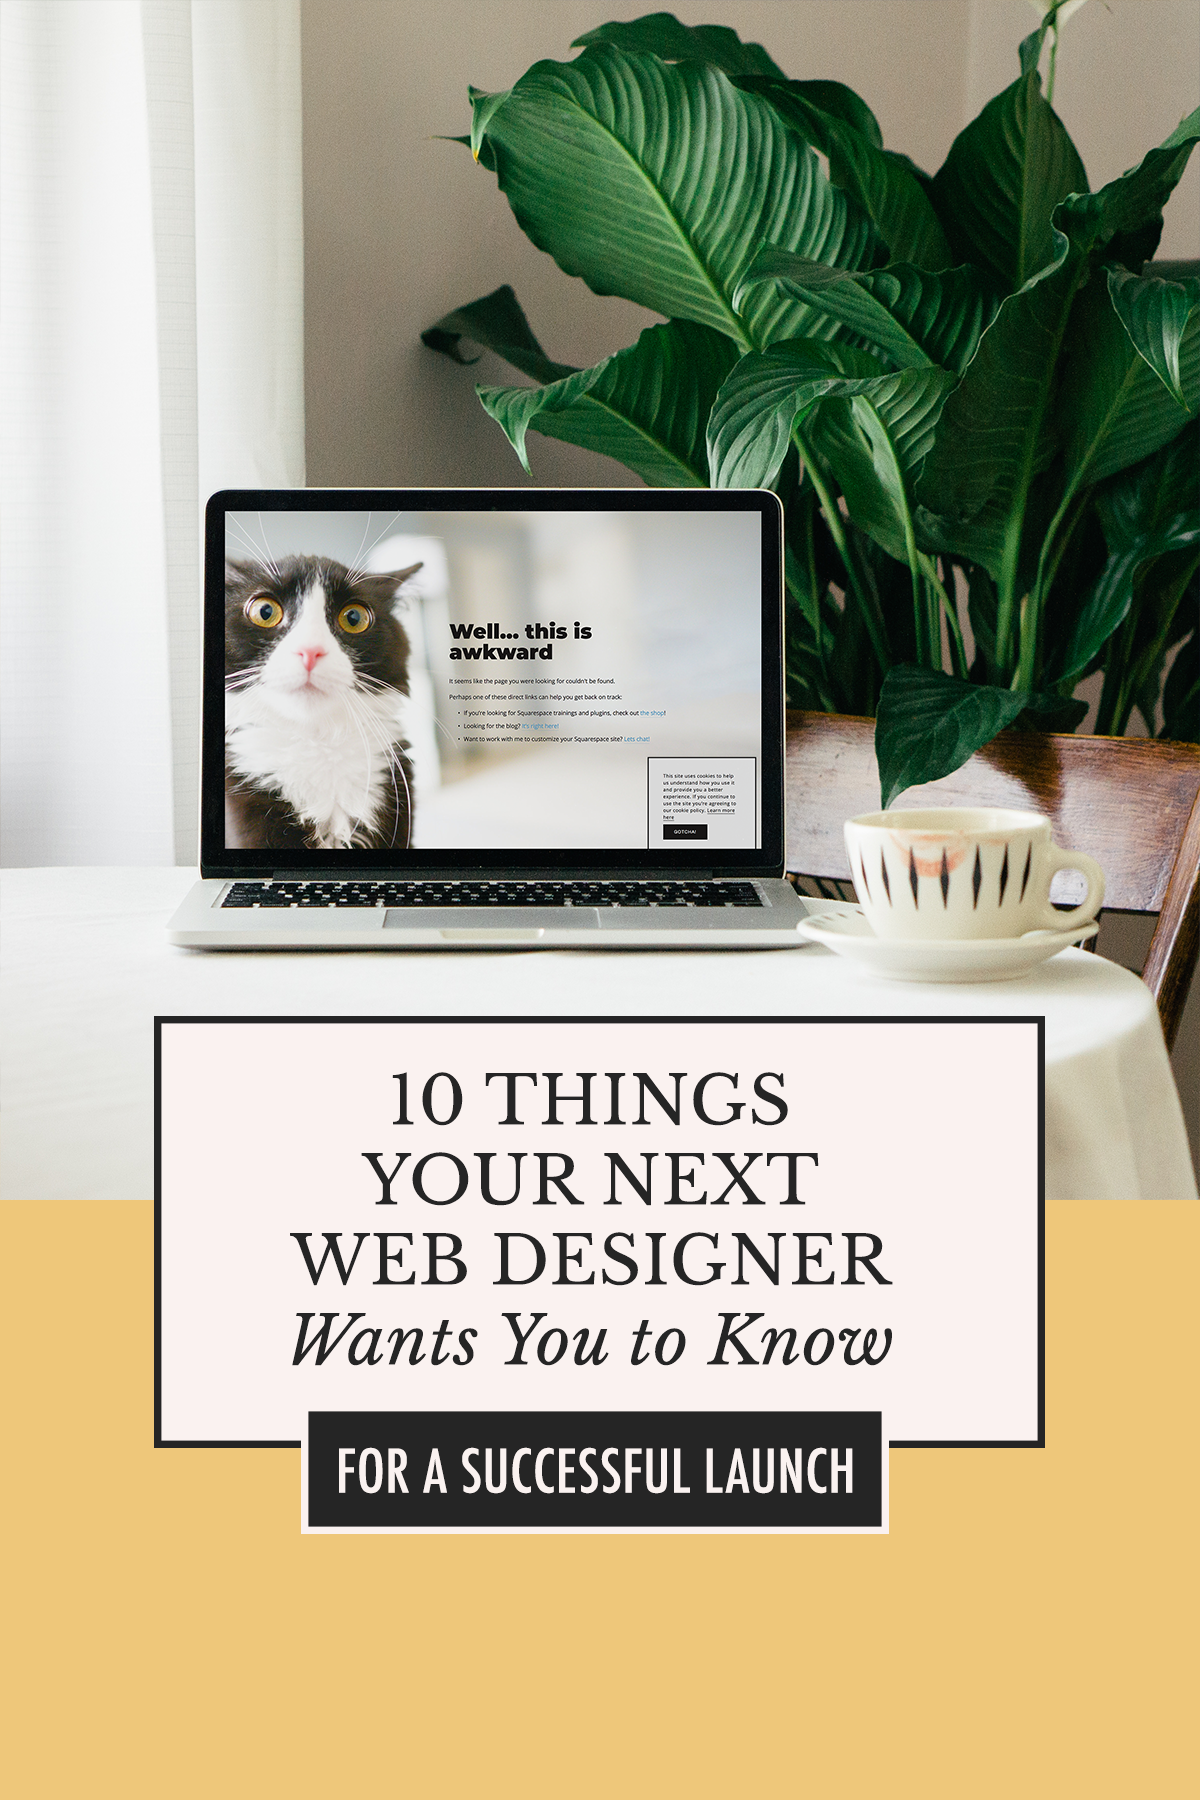 Thinking of hiring a designer? Here are 10 ways to prep for your most successful website launch ever! | Alexis The Greek blog